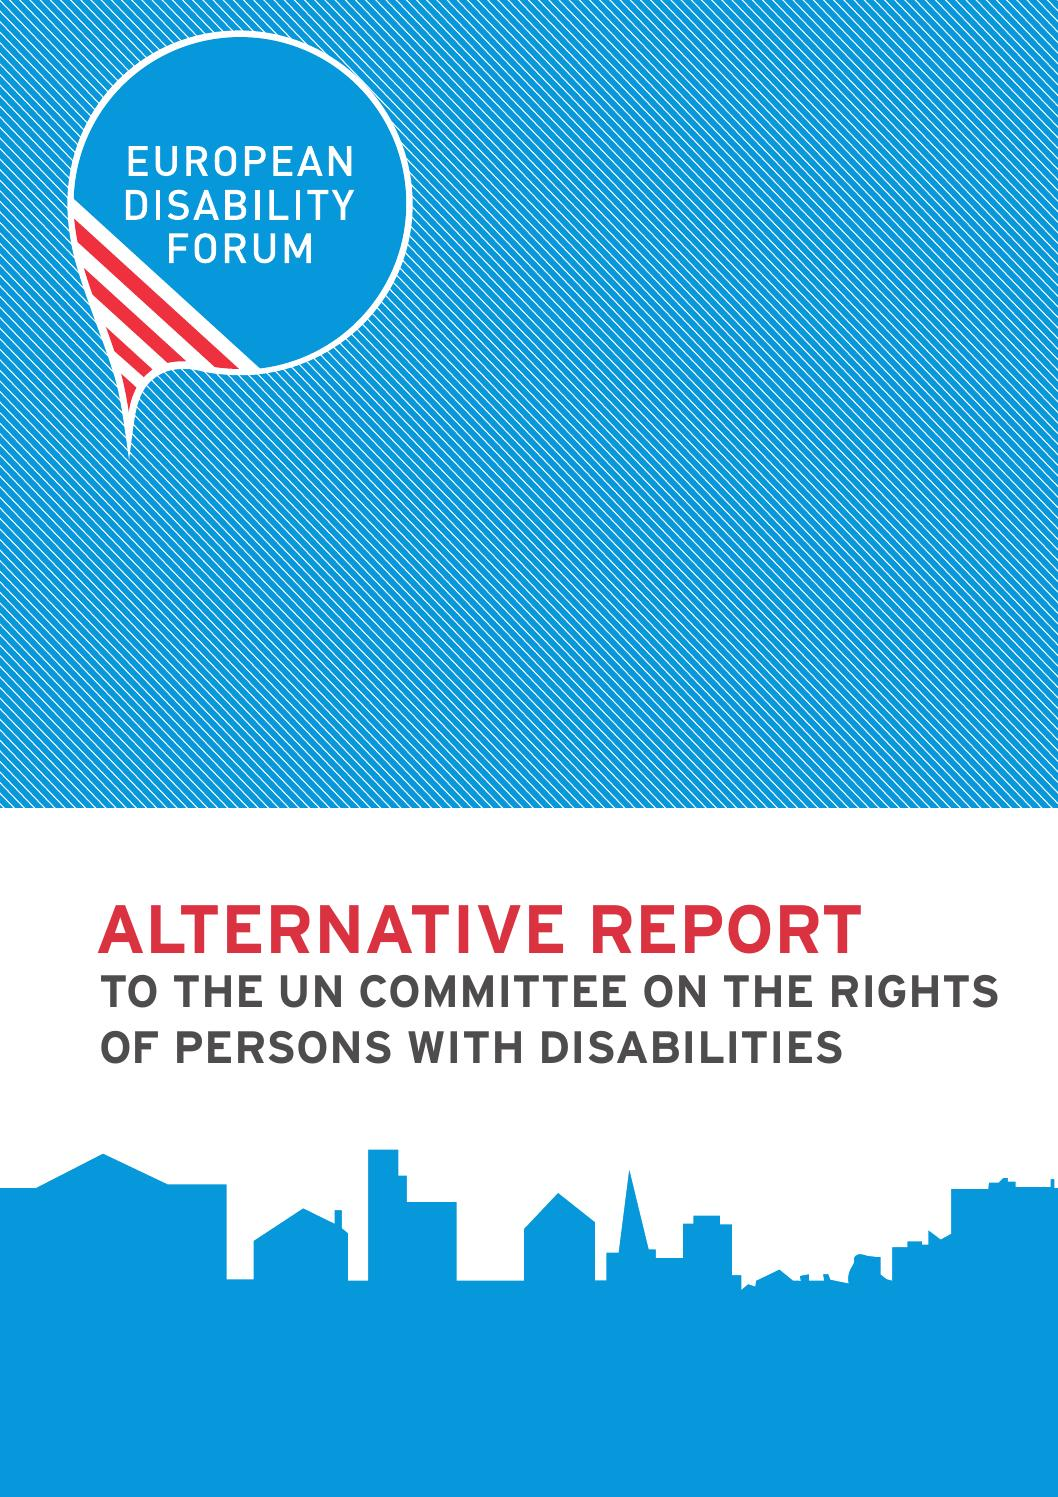 edf alternative report on the implementation of the un